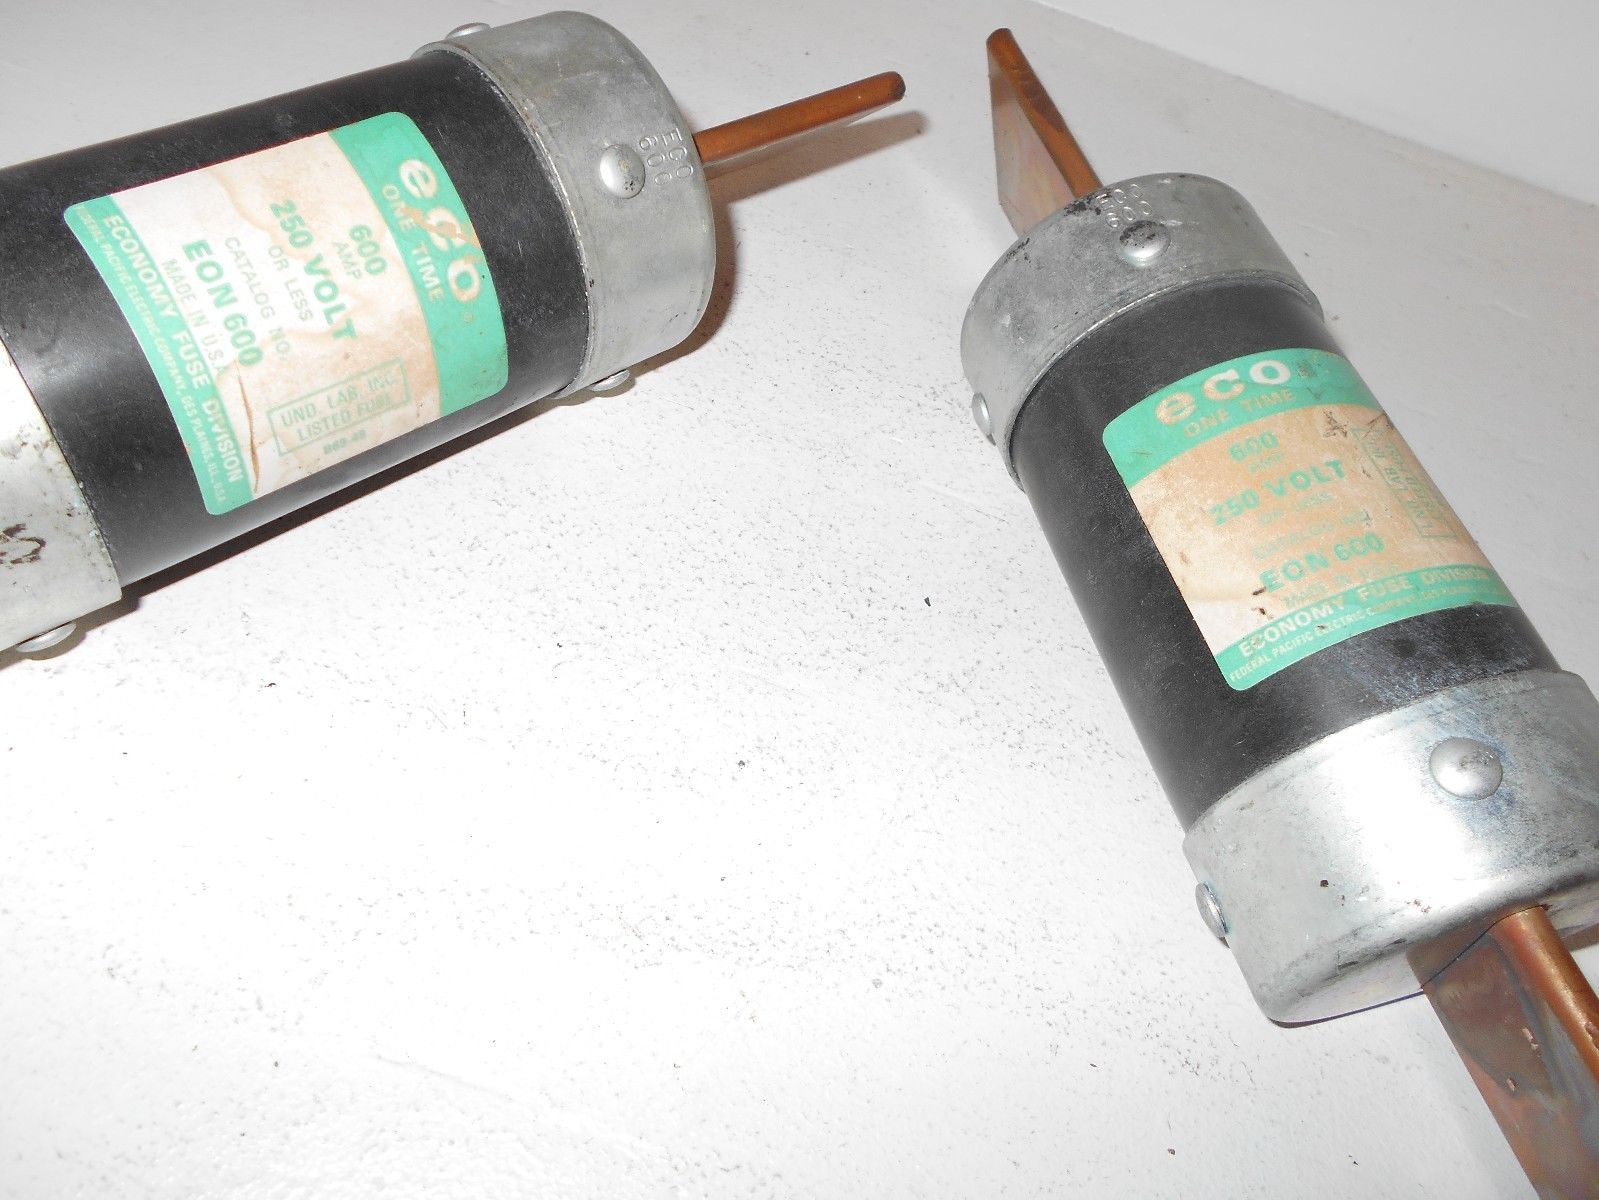 Lot Of 2 Federal Pacific Eon600 Class H Fuses 600 Amp 250v Eos Fln R Fuse Box